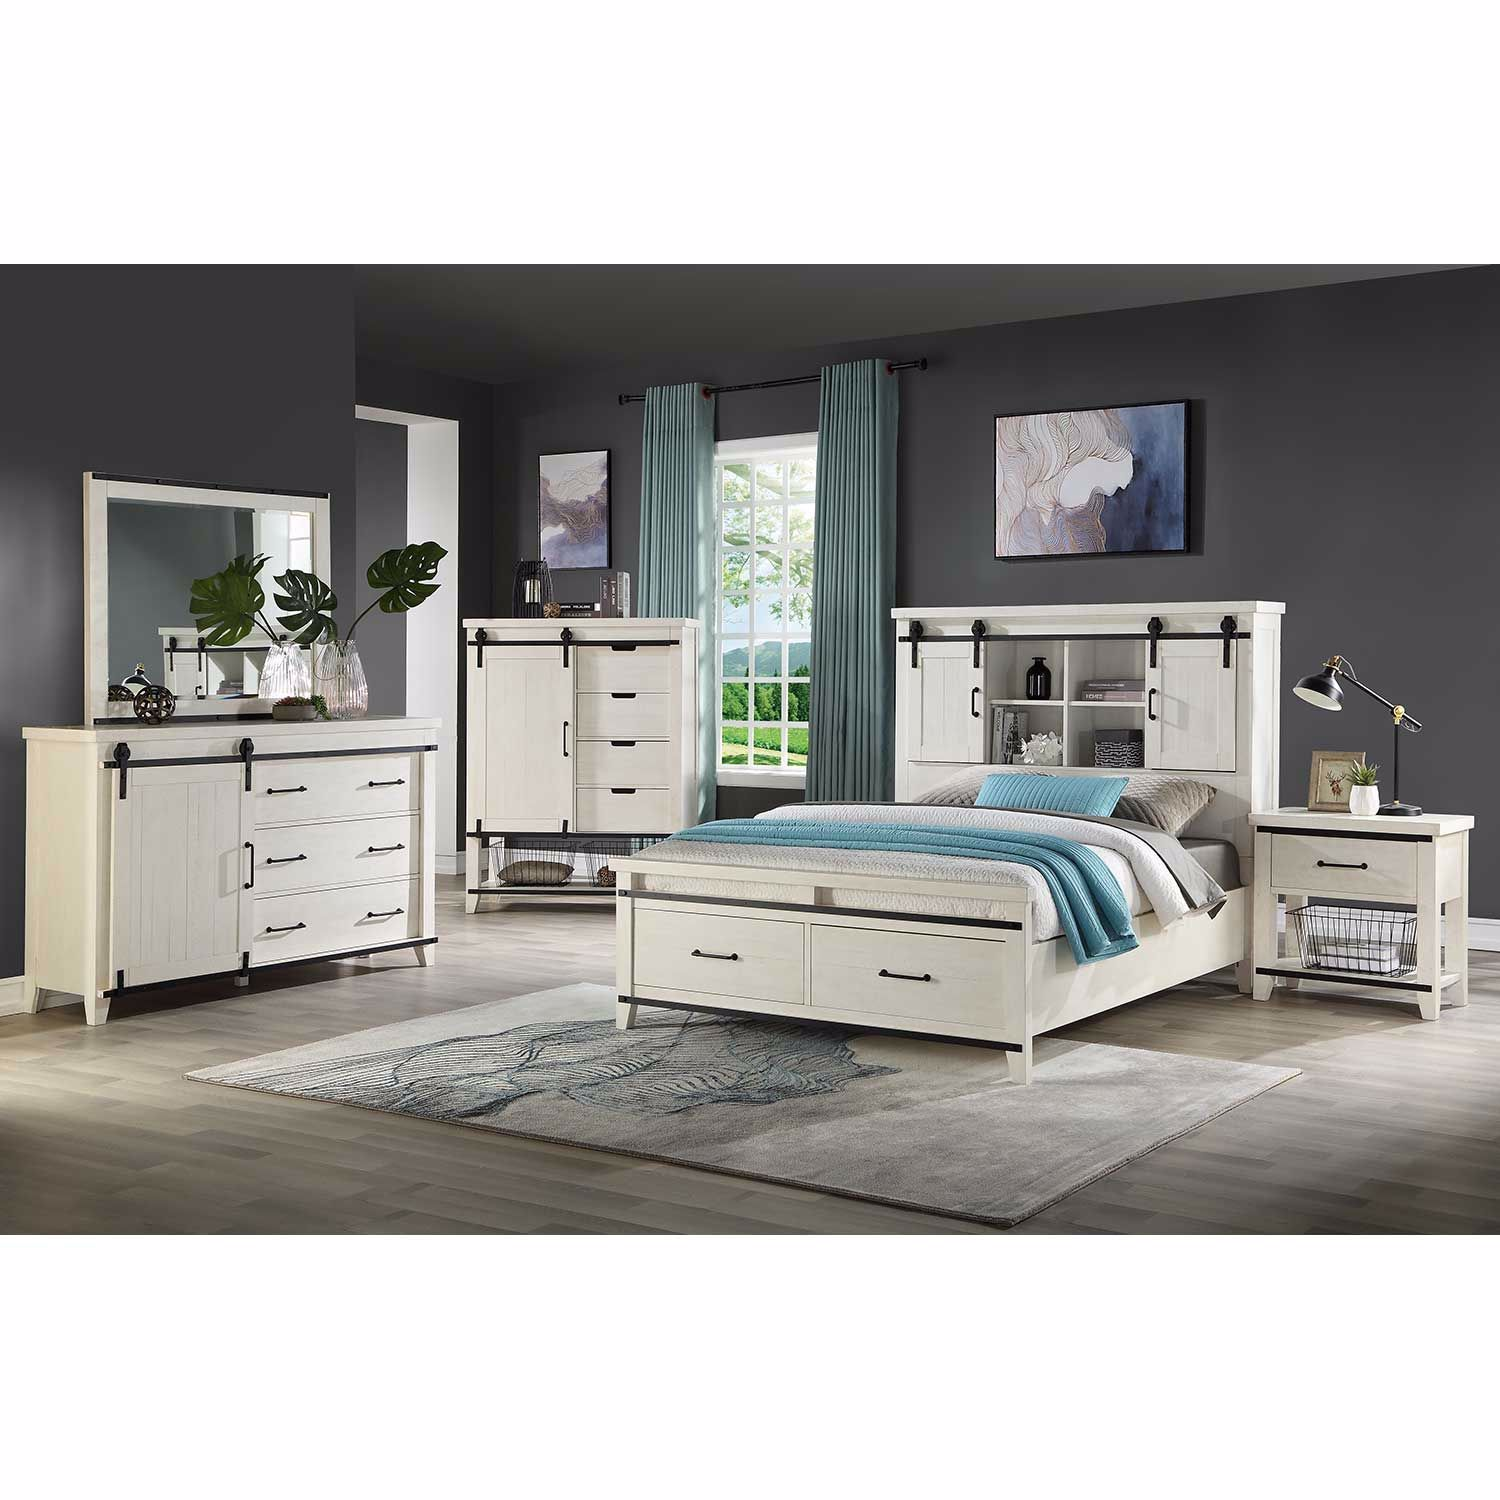 Picture of Dakota Queen Bookcase Storage Bed